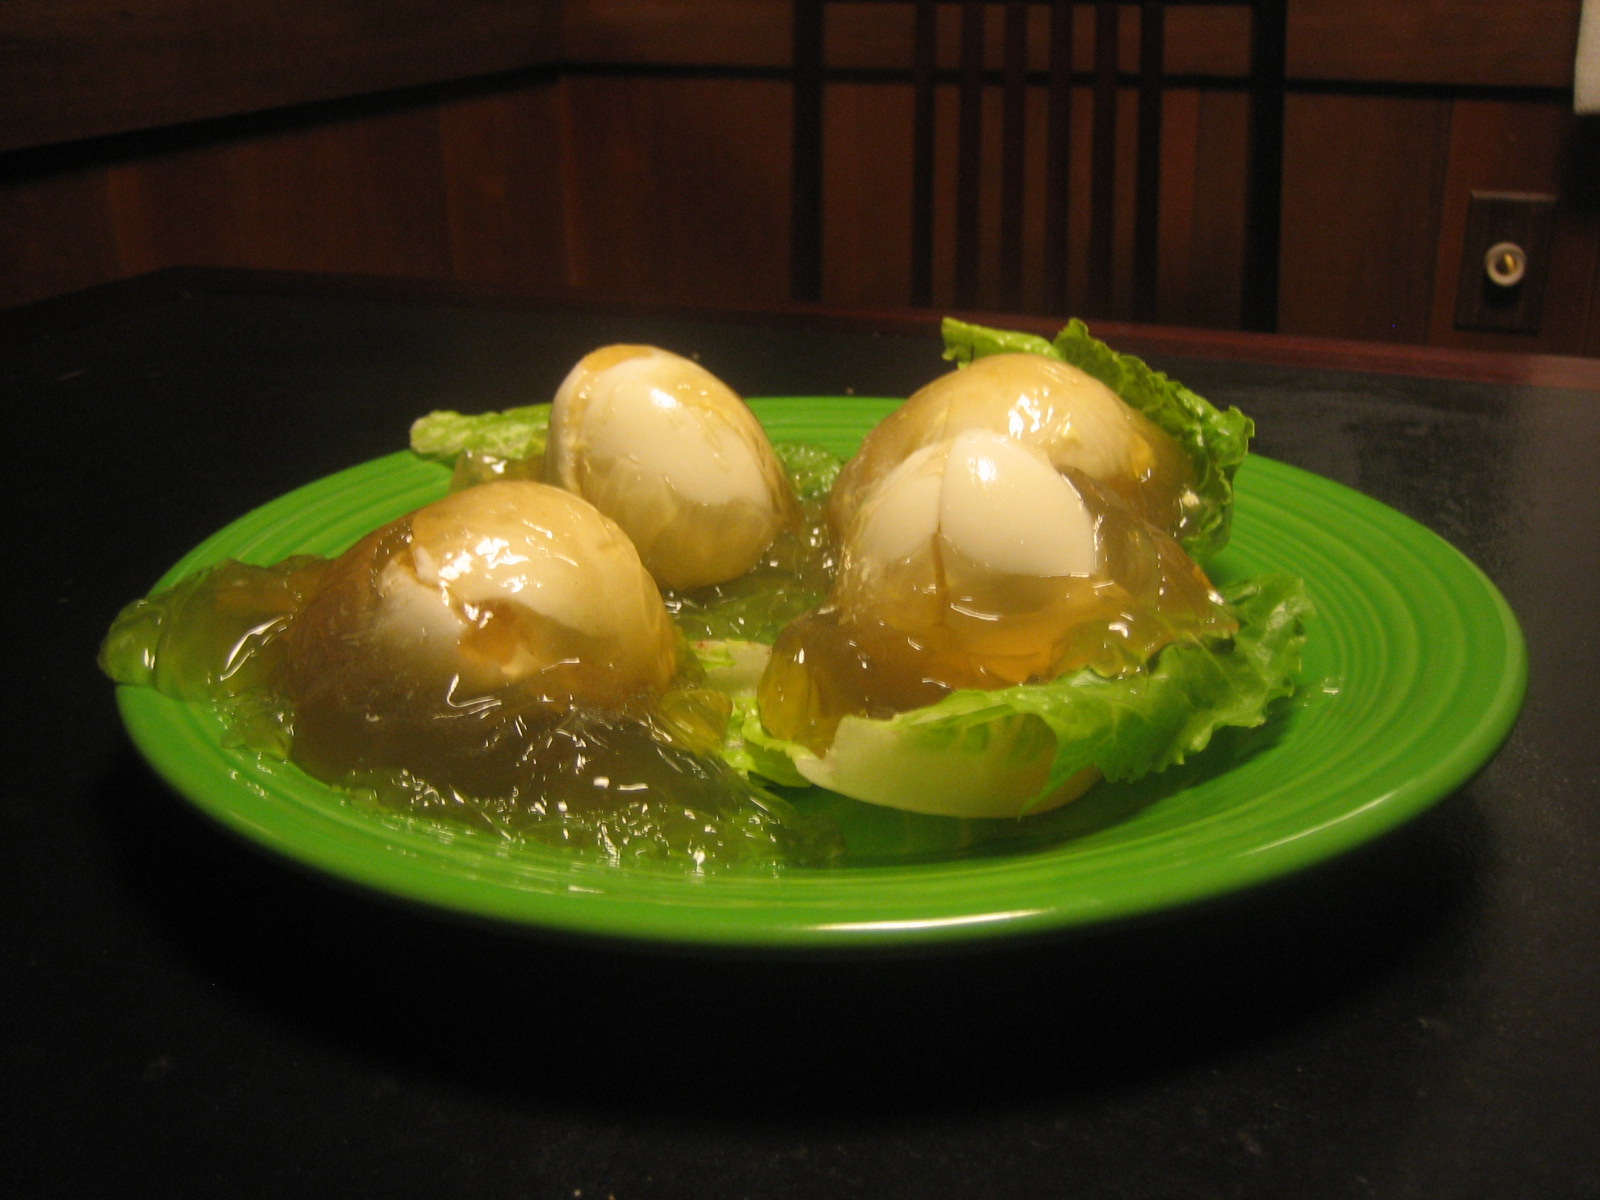 Jellied Stuffed Eggs